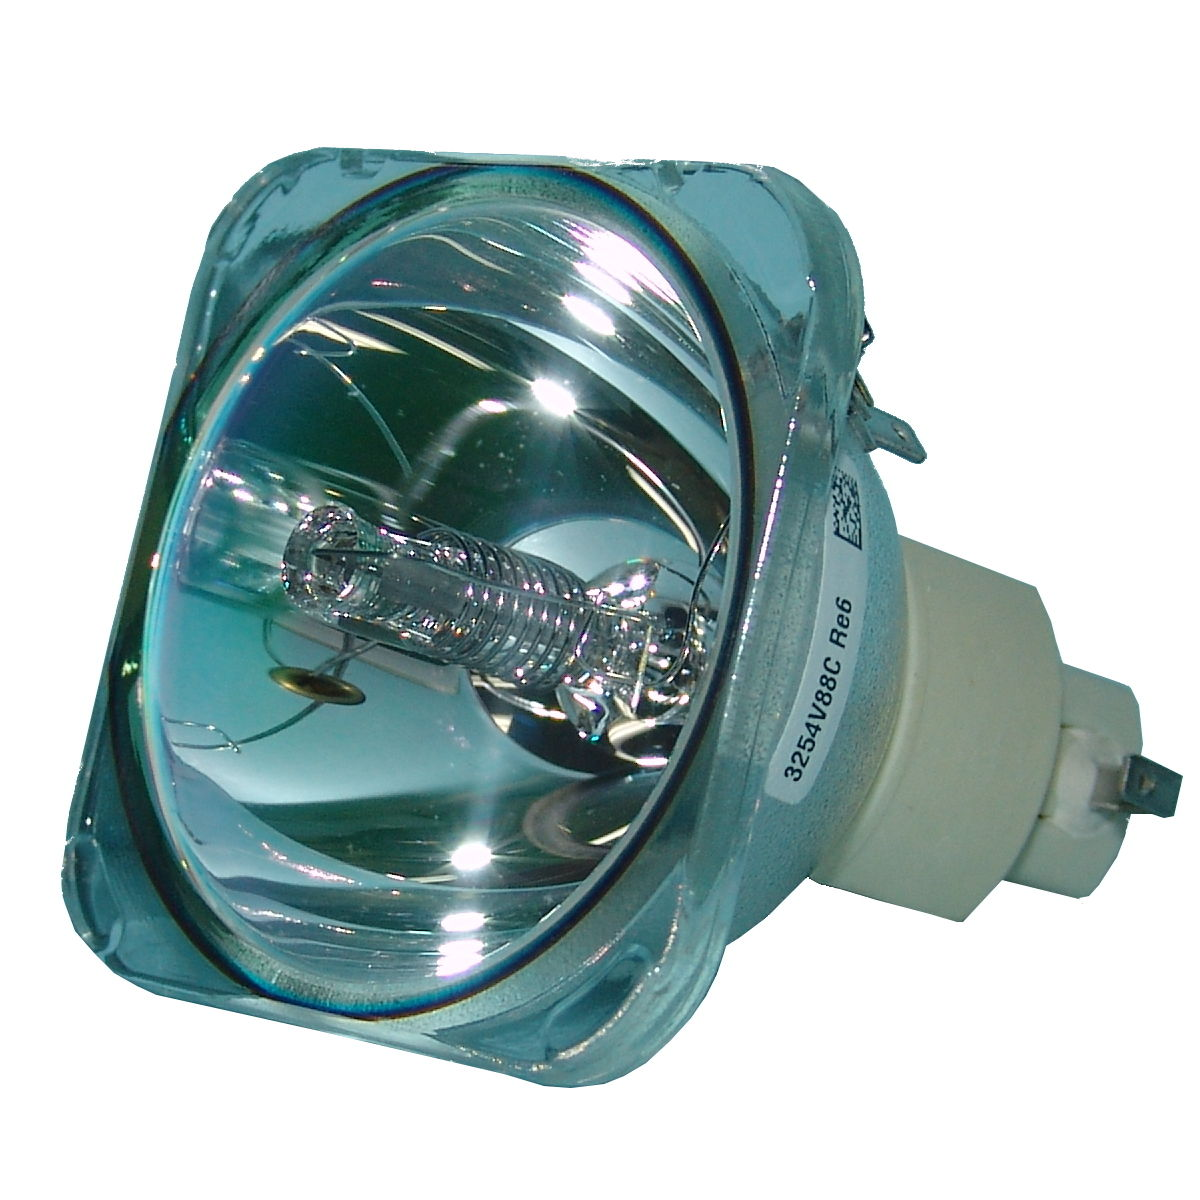 Compatible Bare Bulb BL-FU280A BL-FP280A for OPTOMA TX774 TXR774 TWR1693 Projector Lamp Bulb without housing compatible bare bulb for optoma bl fu180b projector lamp